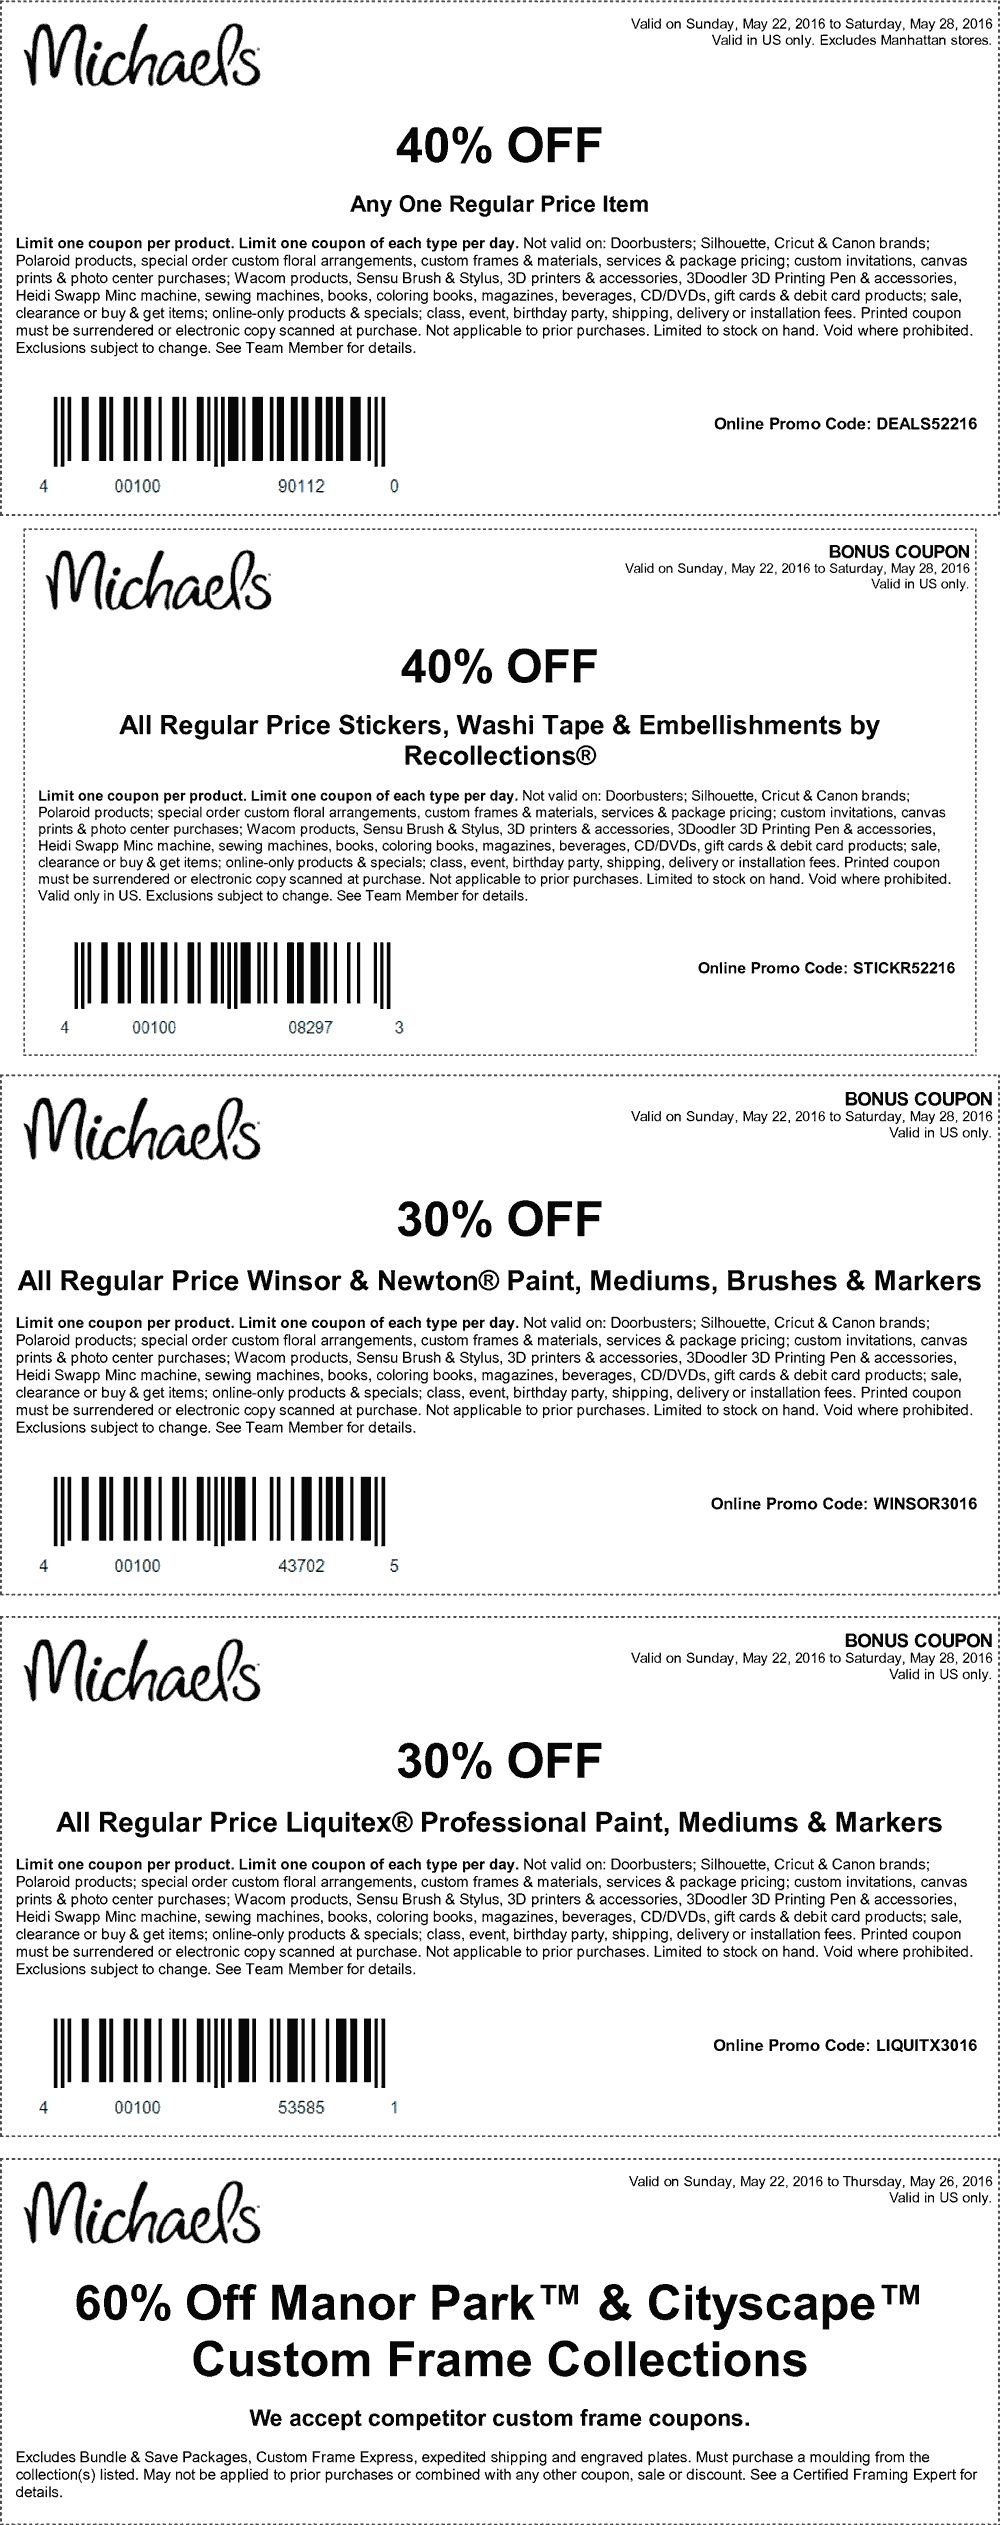 Michaels Coupon August 2017 40% off a single item & more at Michaels, or online via promo code DEALS52216